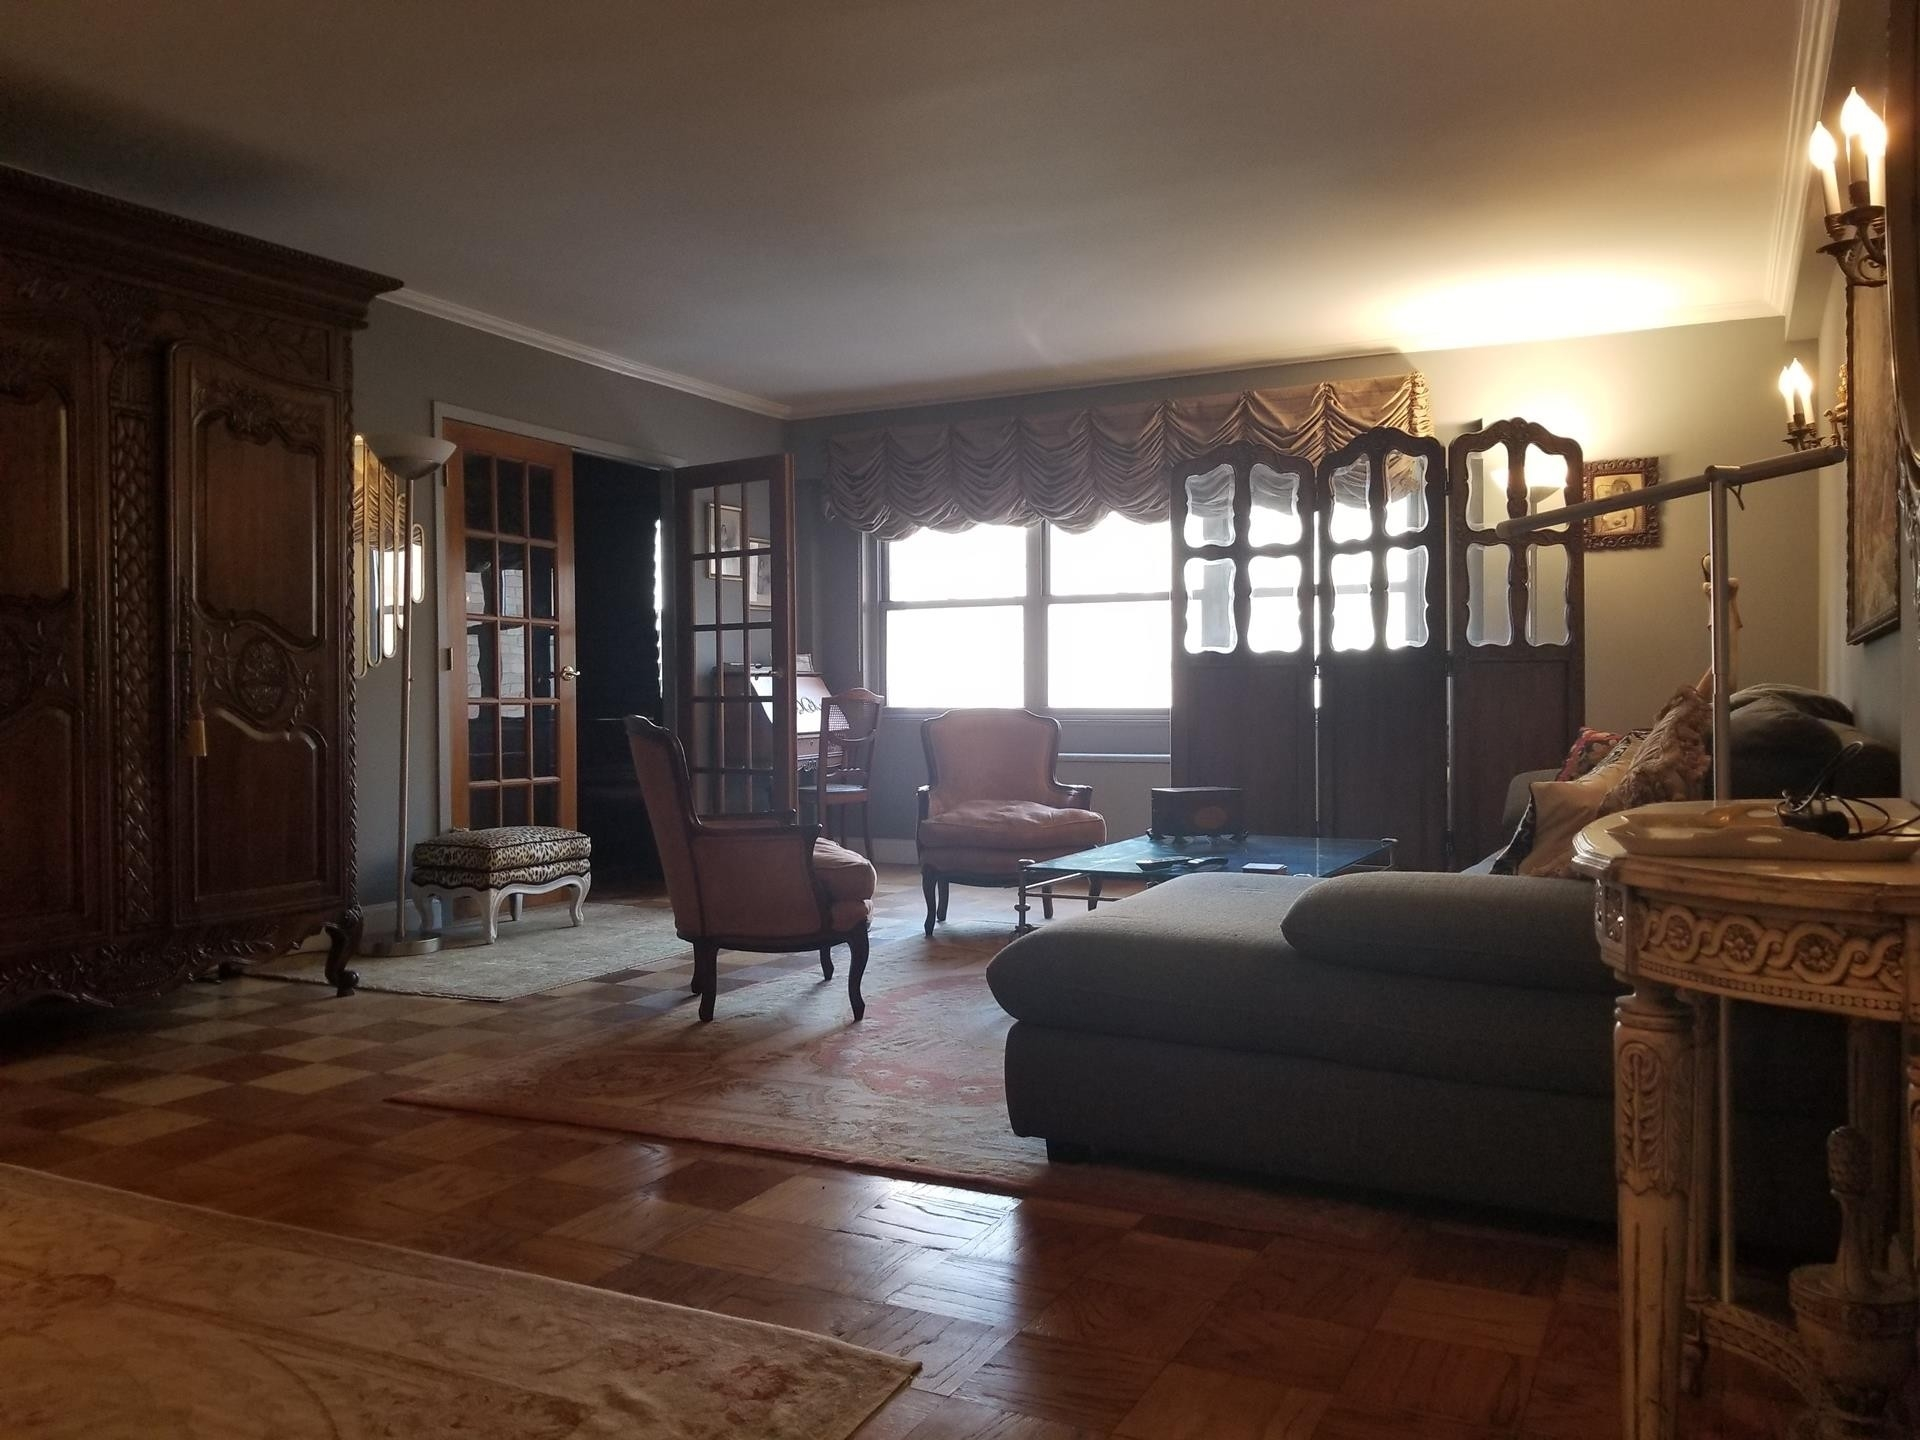 Property at 27 East 65th St Owners Corp., 27 East 65th St, 10A Lenox Hill, New York, NY 10021